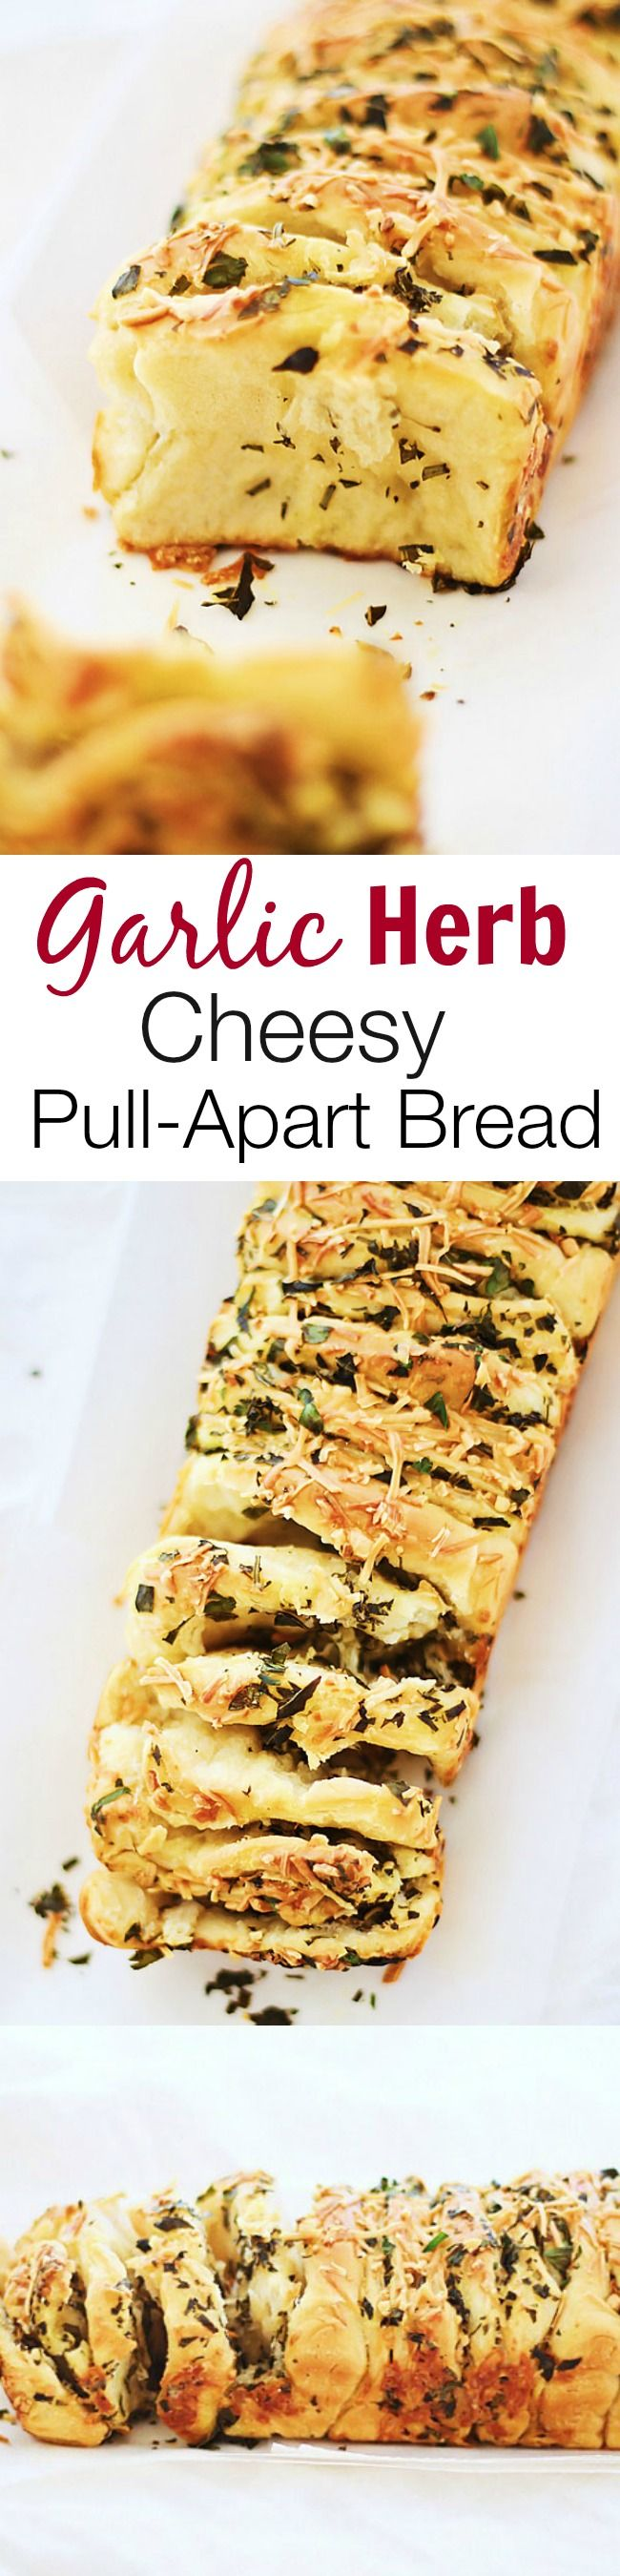 Garlic Herb and Cheese Pull Apart Bread – AMAZING pull-apart bread that is loaded with cheese and garlic herb butter, so good you can't stop eating!! | rasamalaysia.com